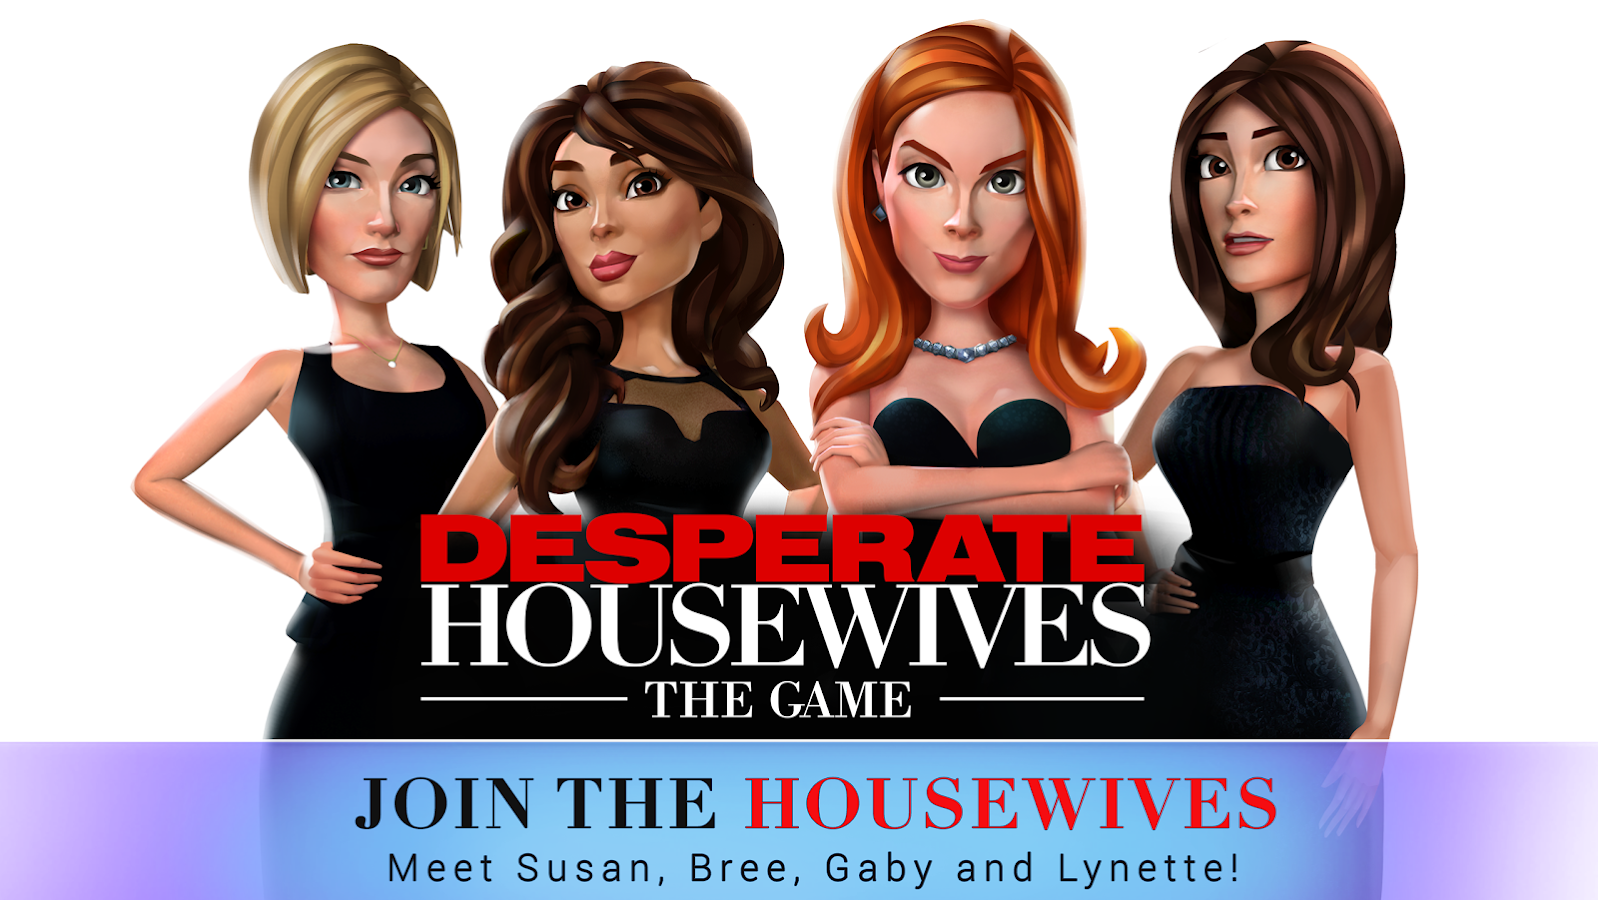 Desperate Housewives: The Game Screenshot 0